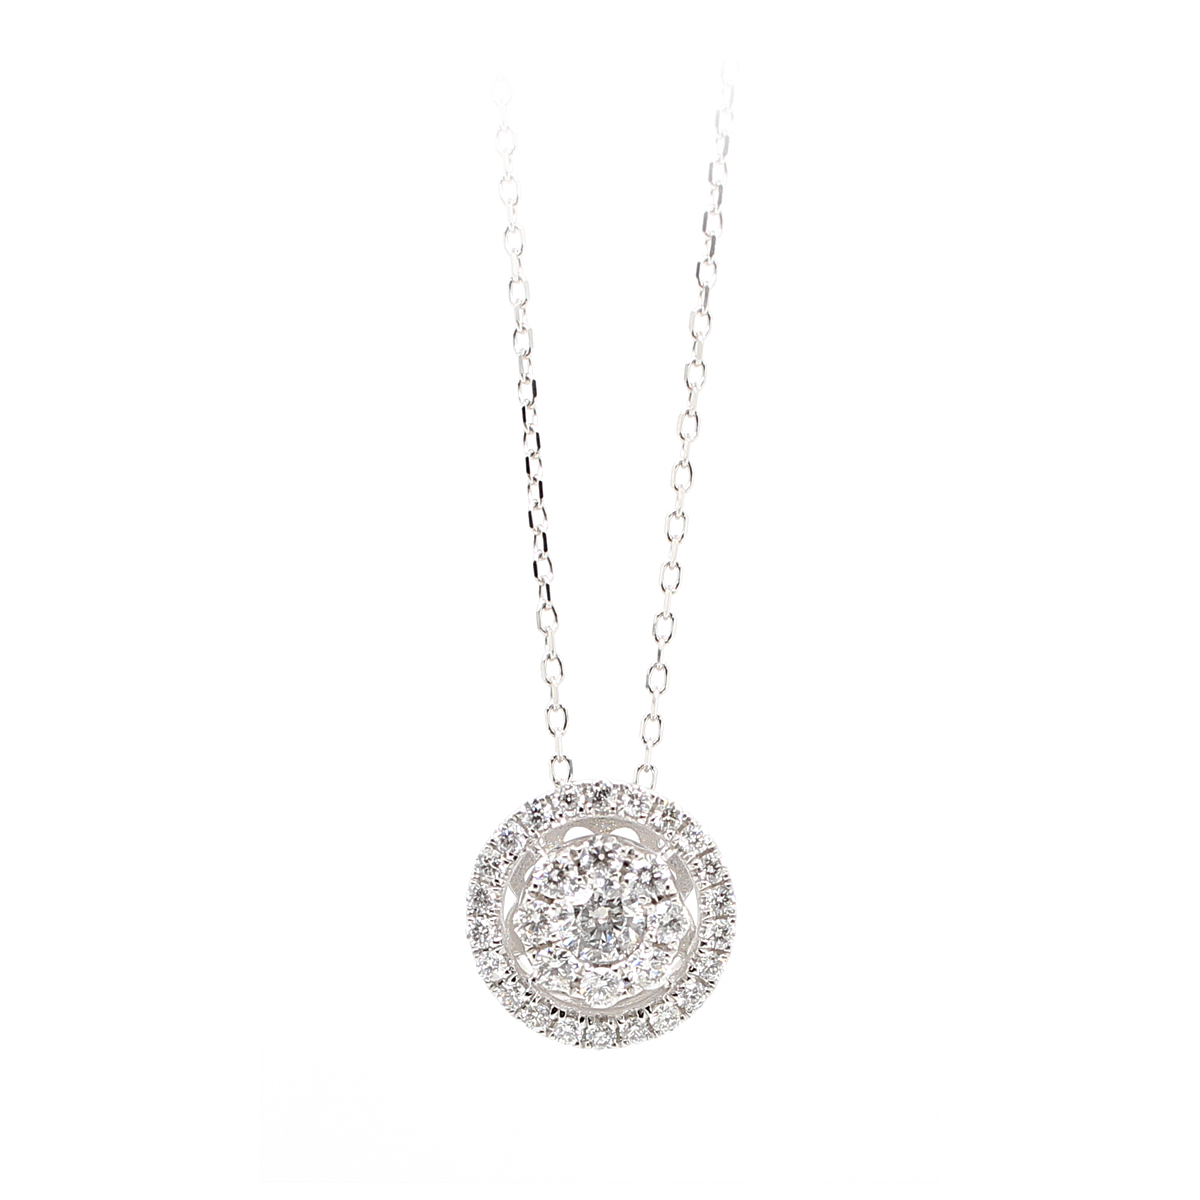 14 Karat White Gold Diamond Cluster Pendant Necklace